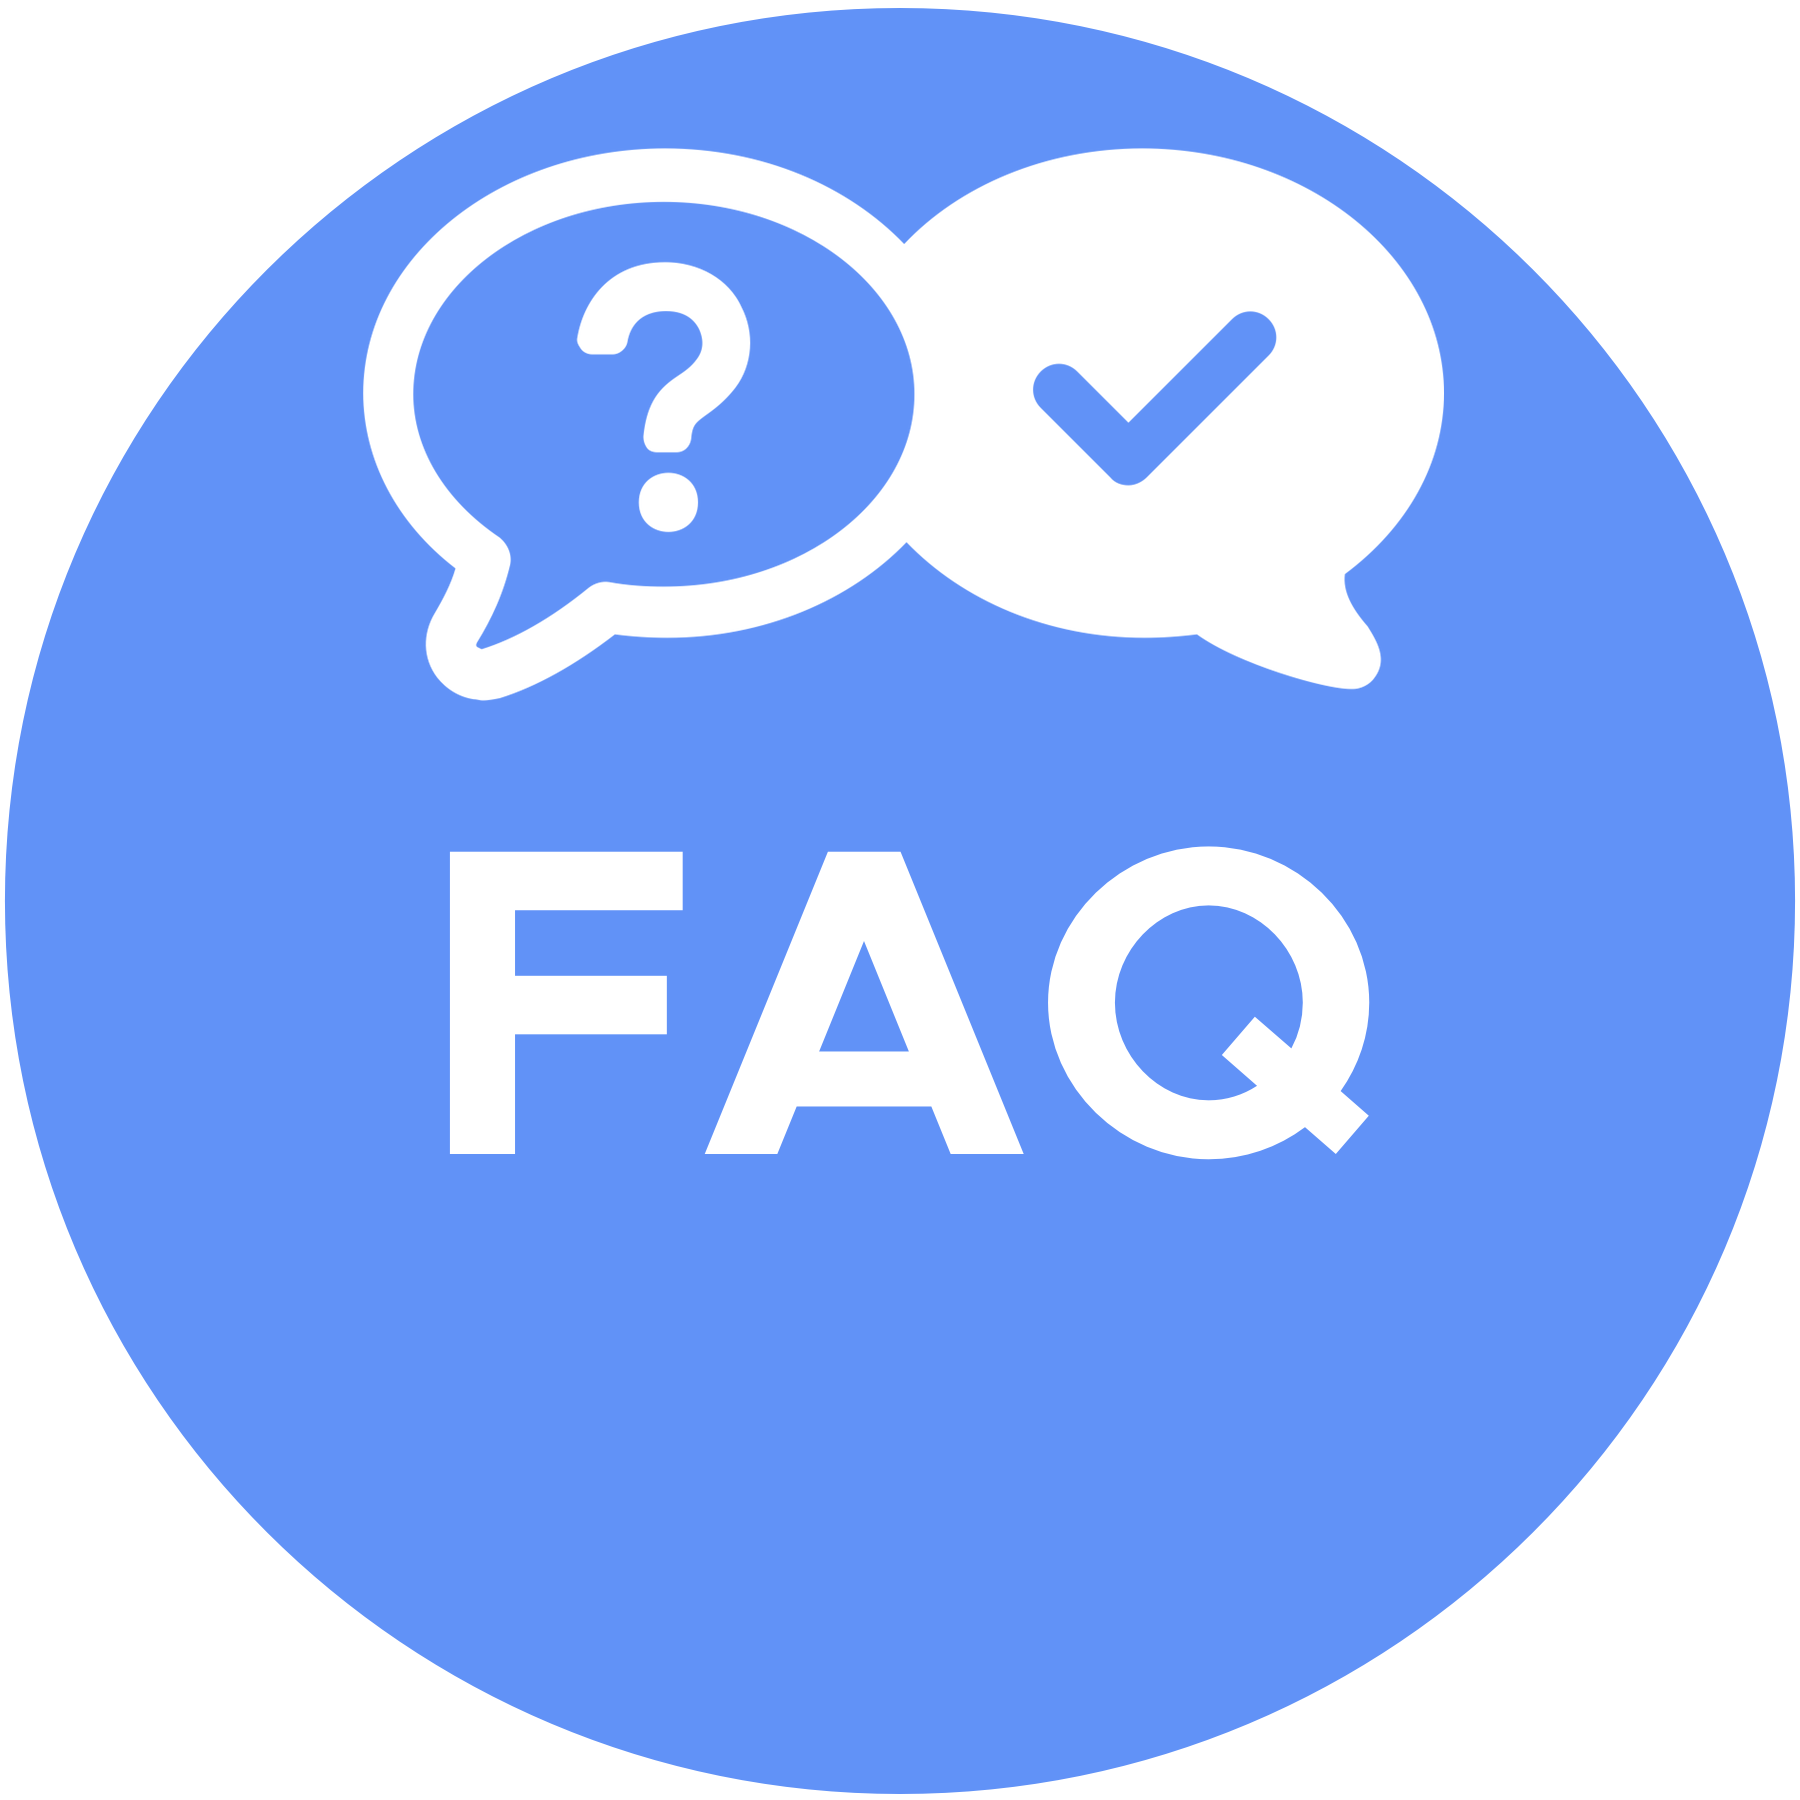 FAQ | Frequently Asked Questions